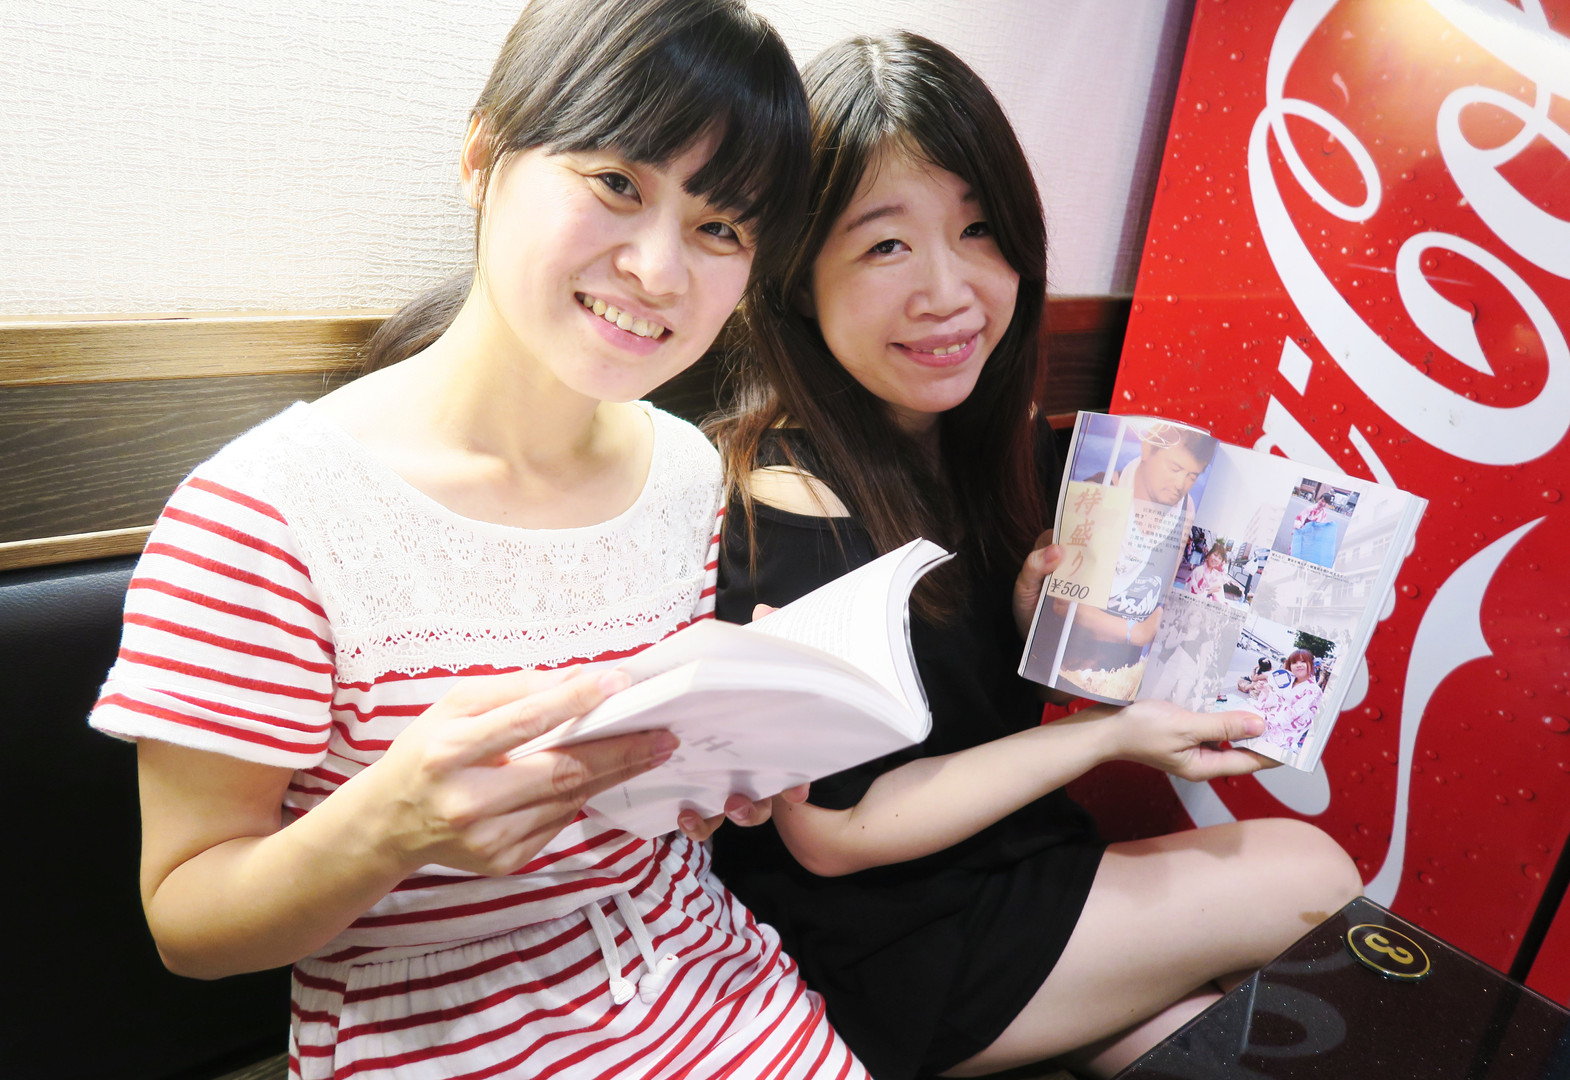 The Heroines show their favorate pages of【WH. Diary】